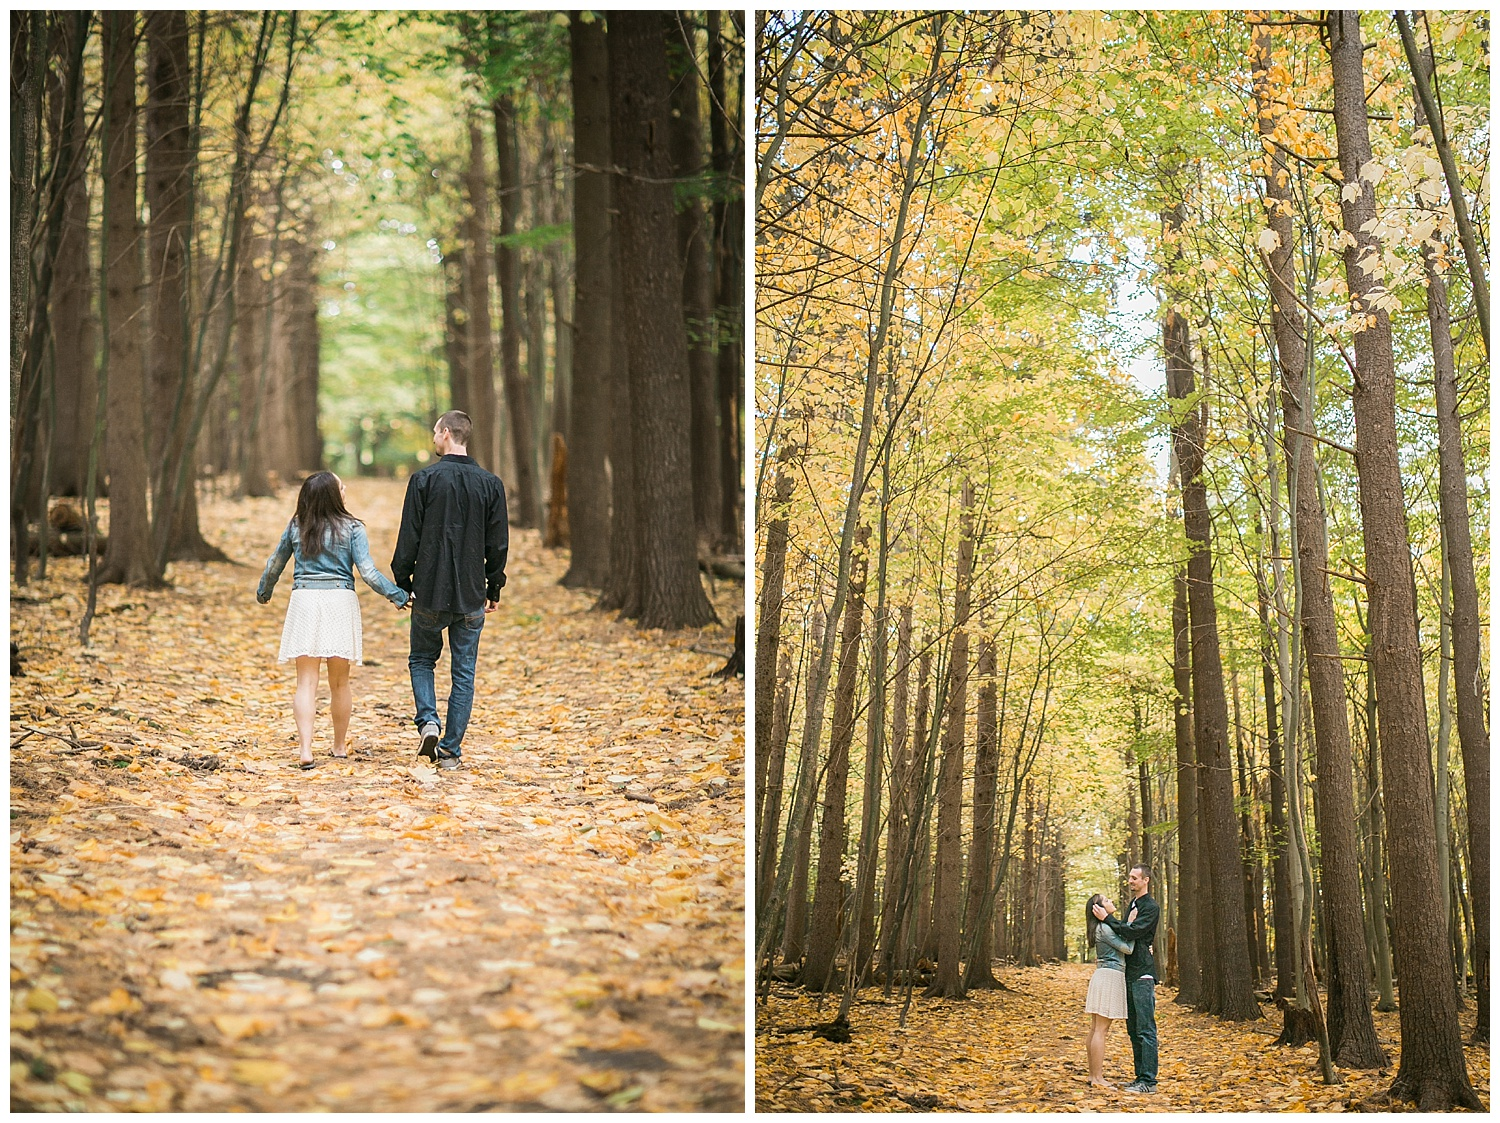 Gina and Tony - Engagement session - letchworth state park - lass and beau_0542.jpg